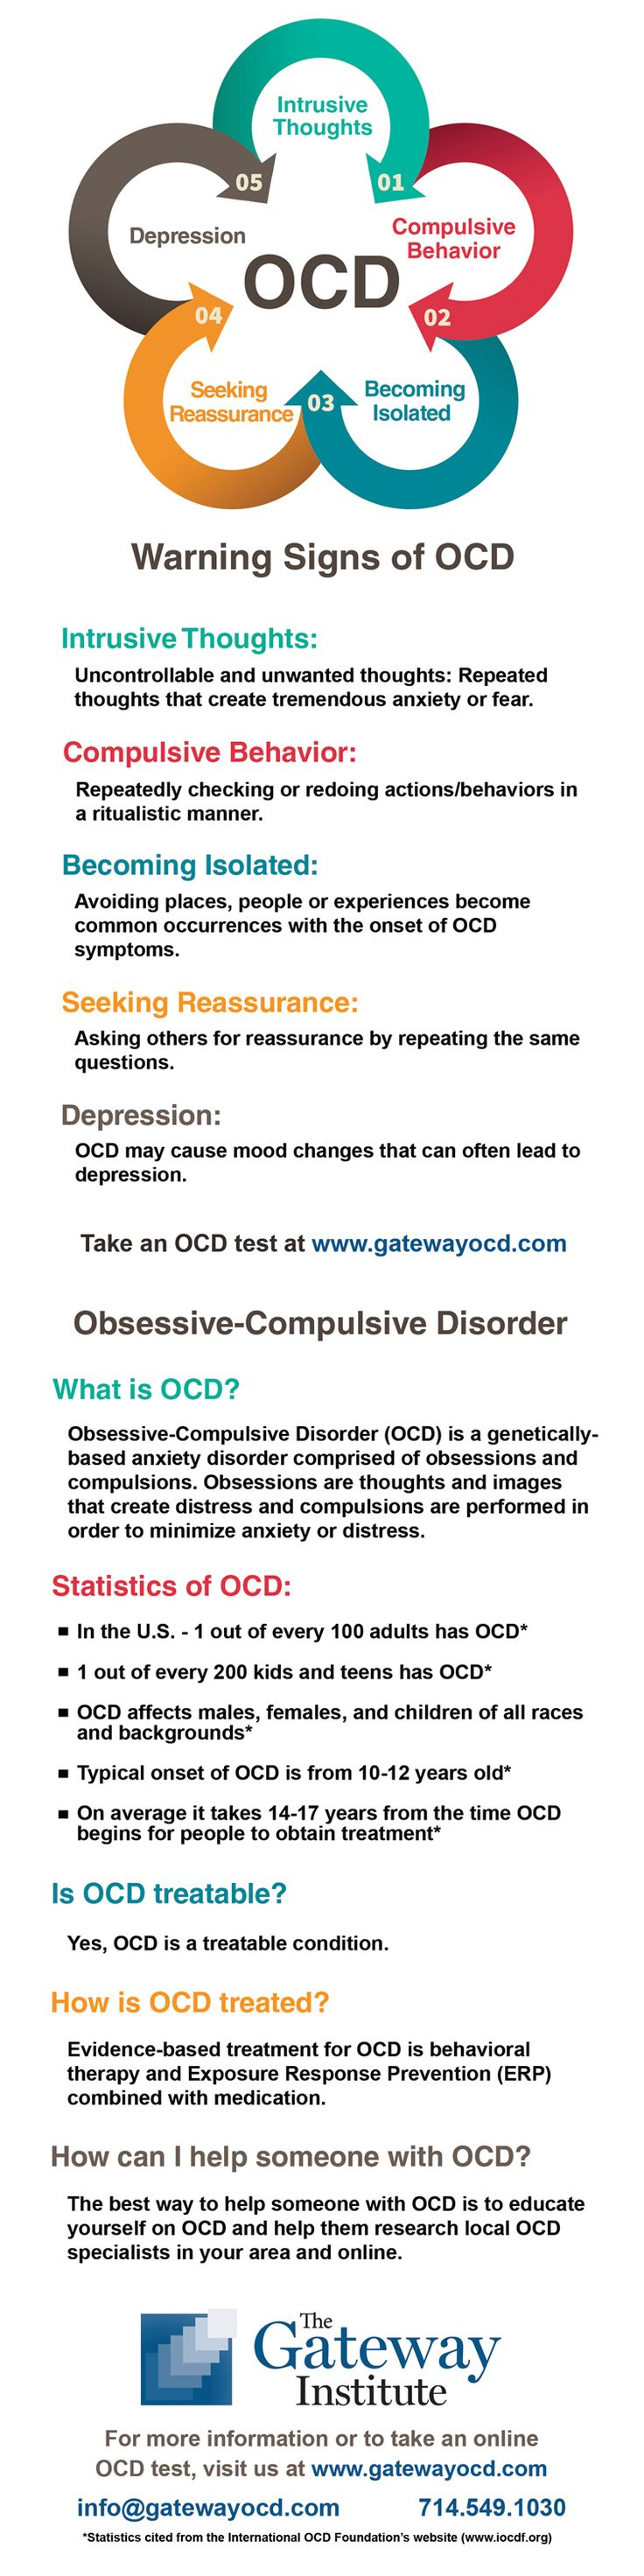 5 Warning Signs of OCD https://www.liveinfographic.com/i/5-warning-signs-of-ocd/ Tags: #infographic  #infographics #popular #pinterest #pinterestinfographics